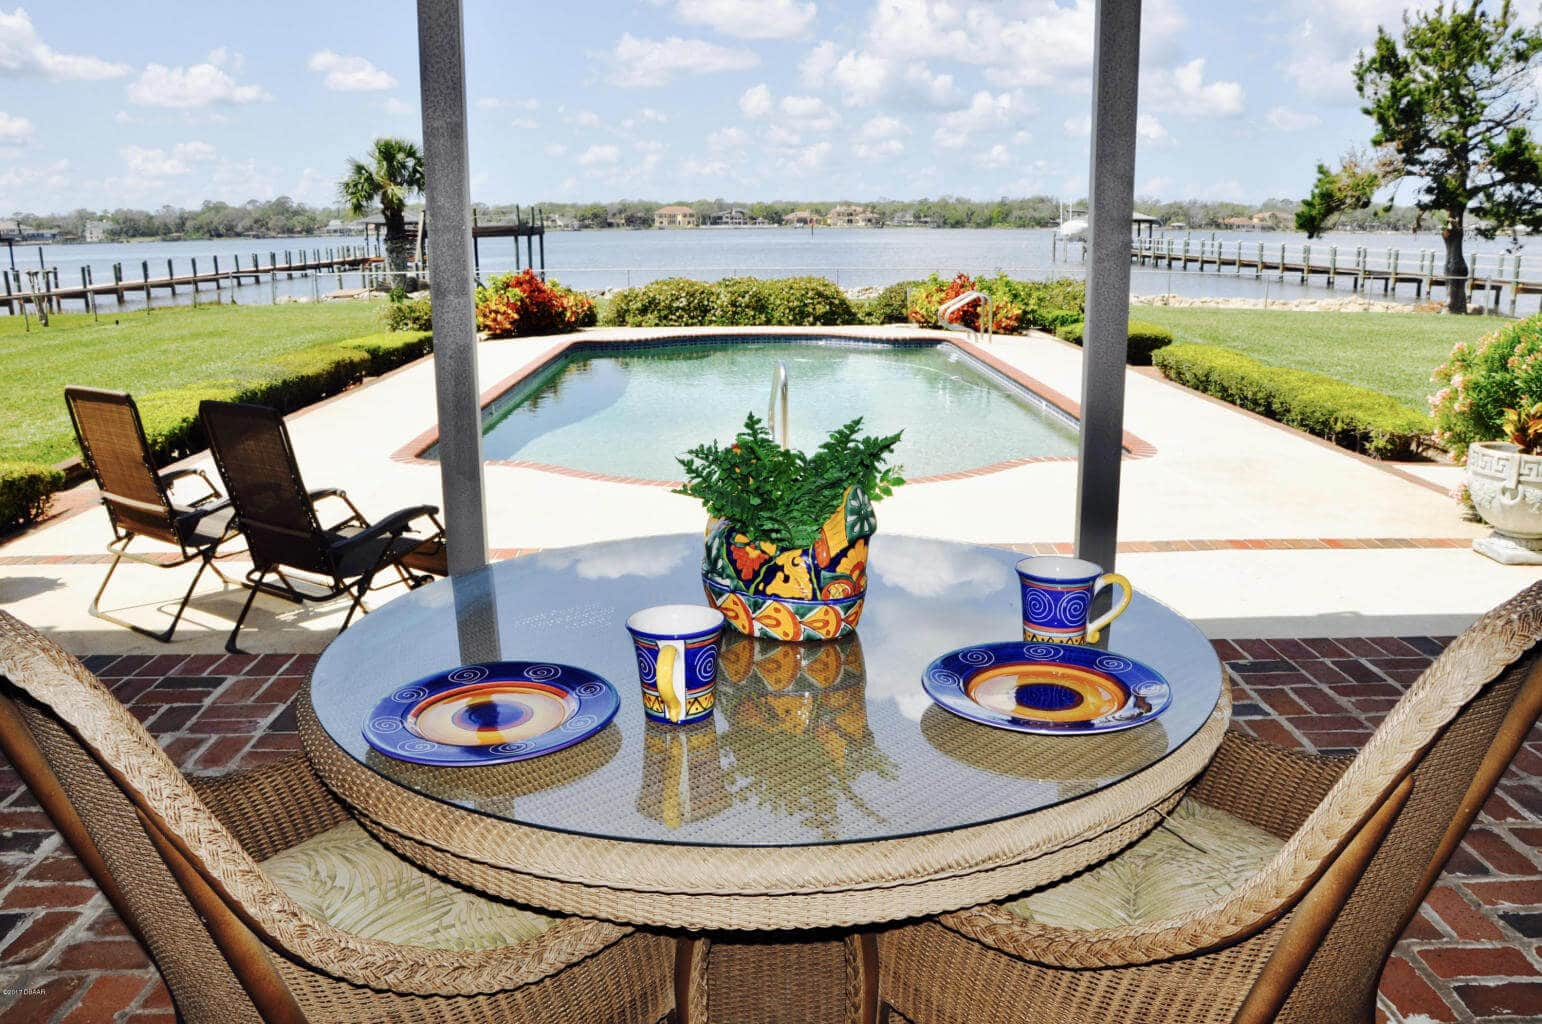 10 Most Expensive Homes Sold In The Daytona Beach Area